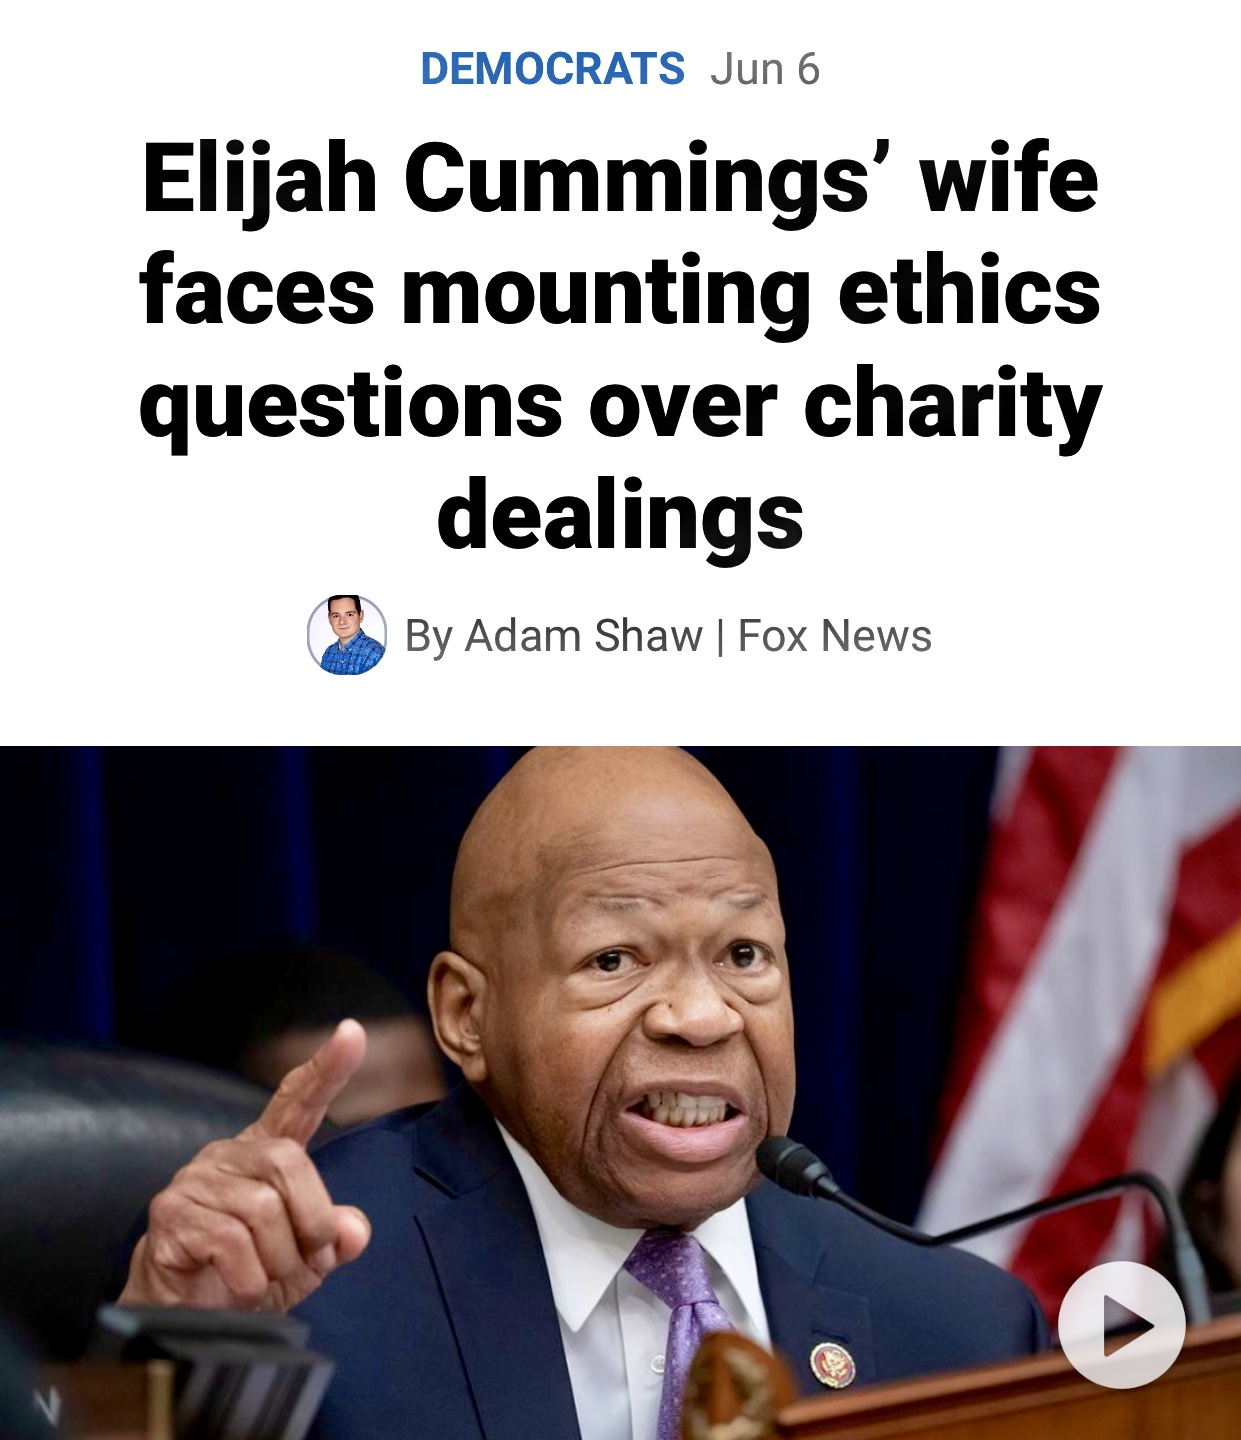 The Late Elijah Cummings Wife Faces Questions over Charity Dealings